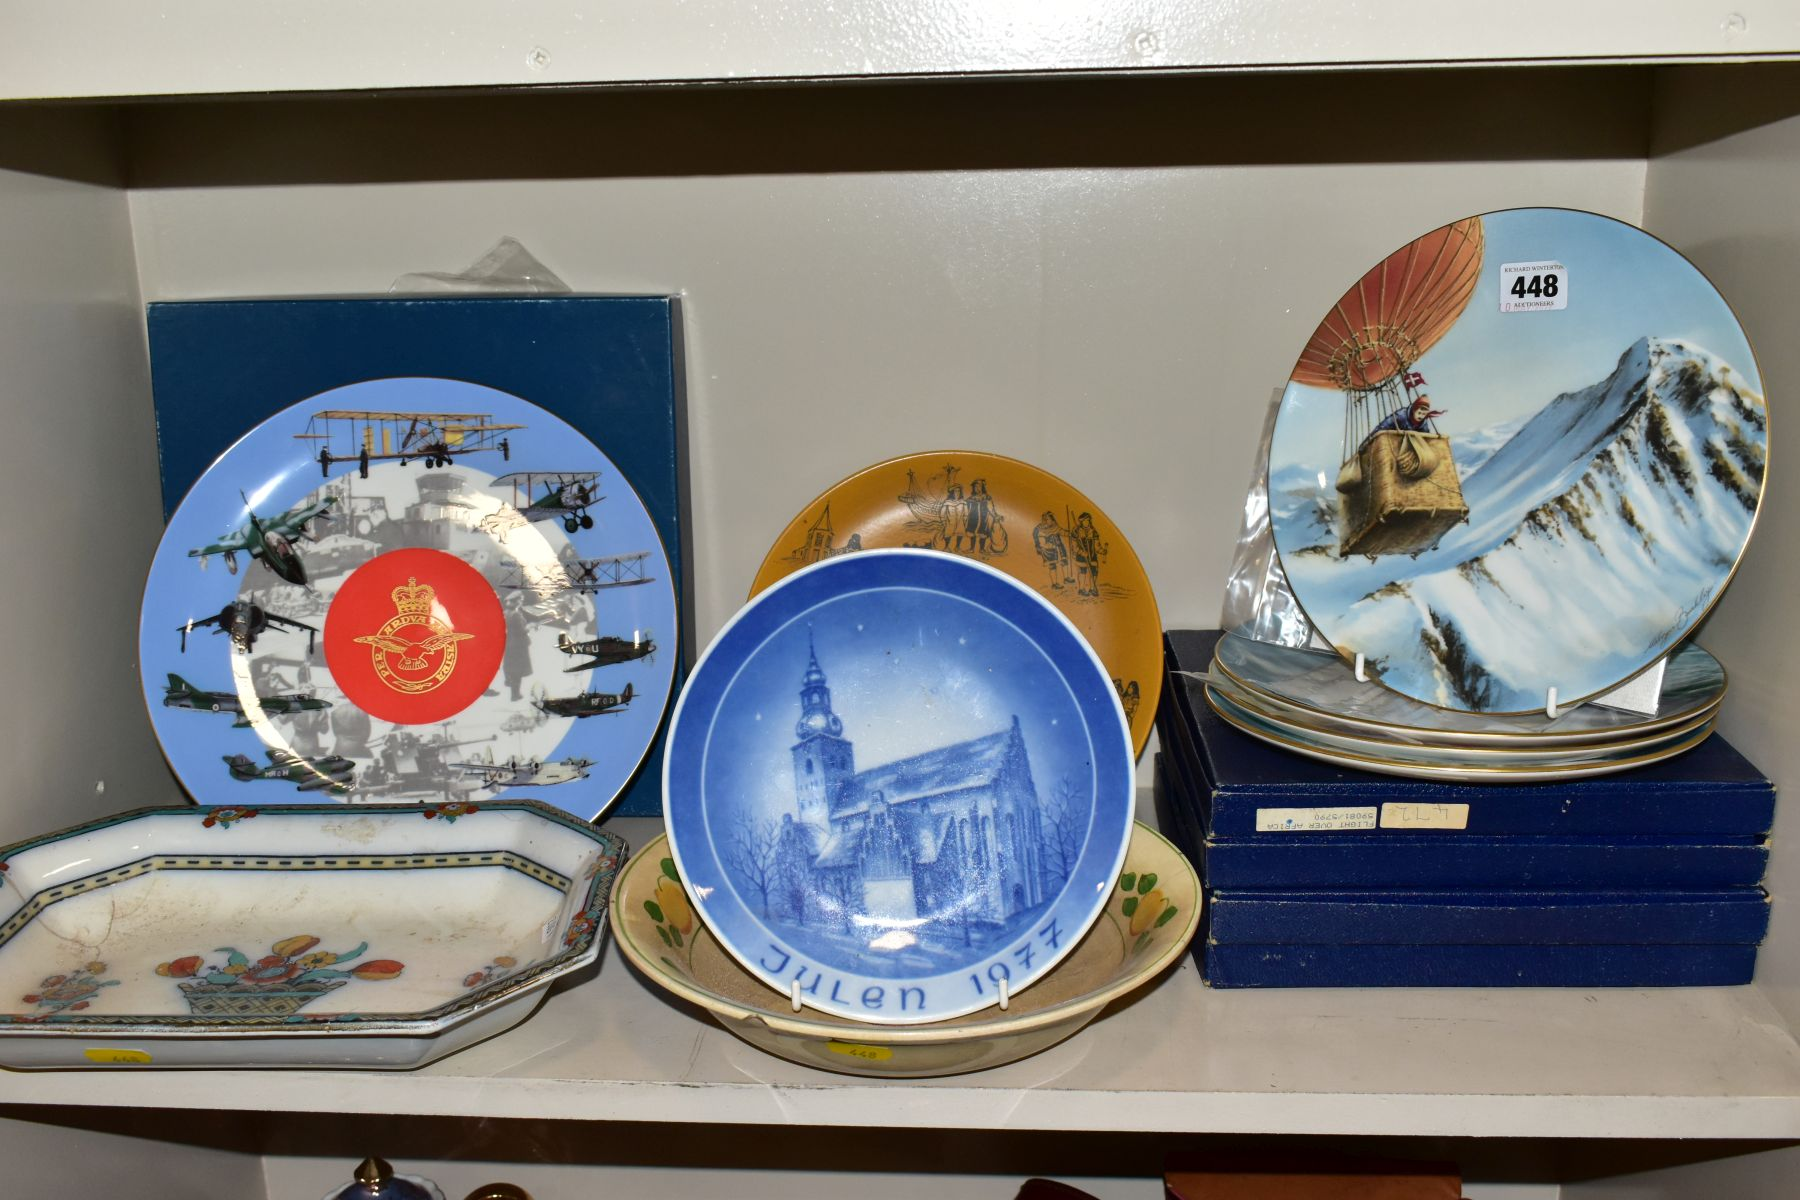 A SET OF FOUR BOXED COALPORT LIMITED EDITION COALPORT CABINET PLATES, from 'World of Ballooning